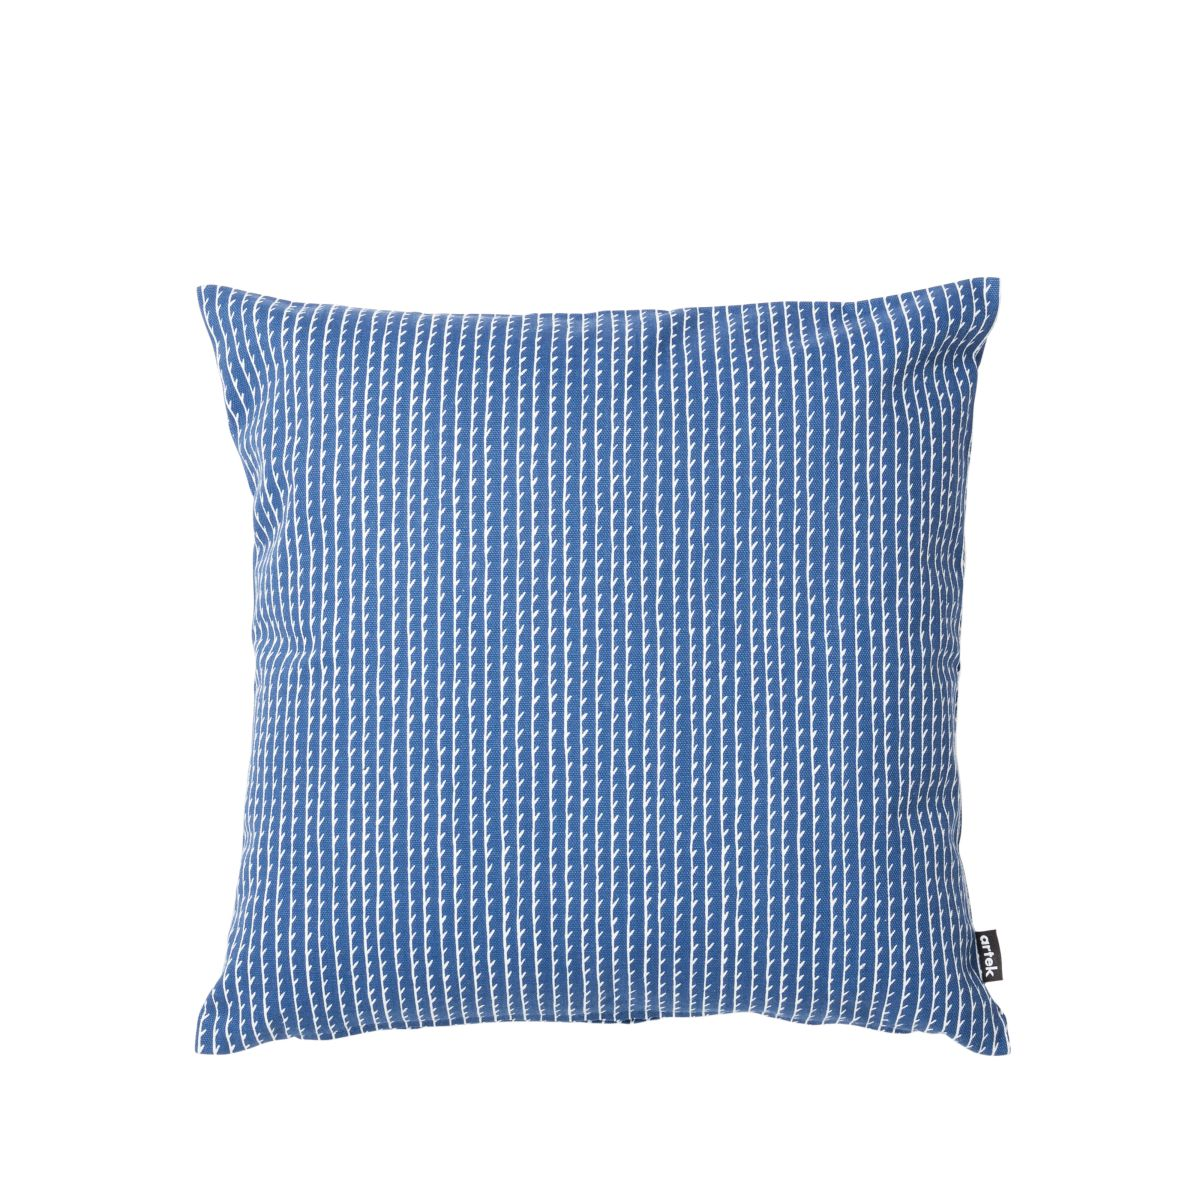 Rivi-Cushion-Small-Blue_White_Web-2410979